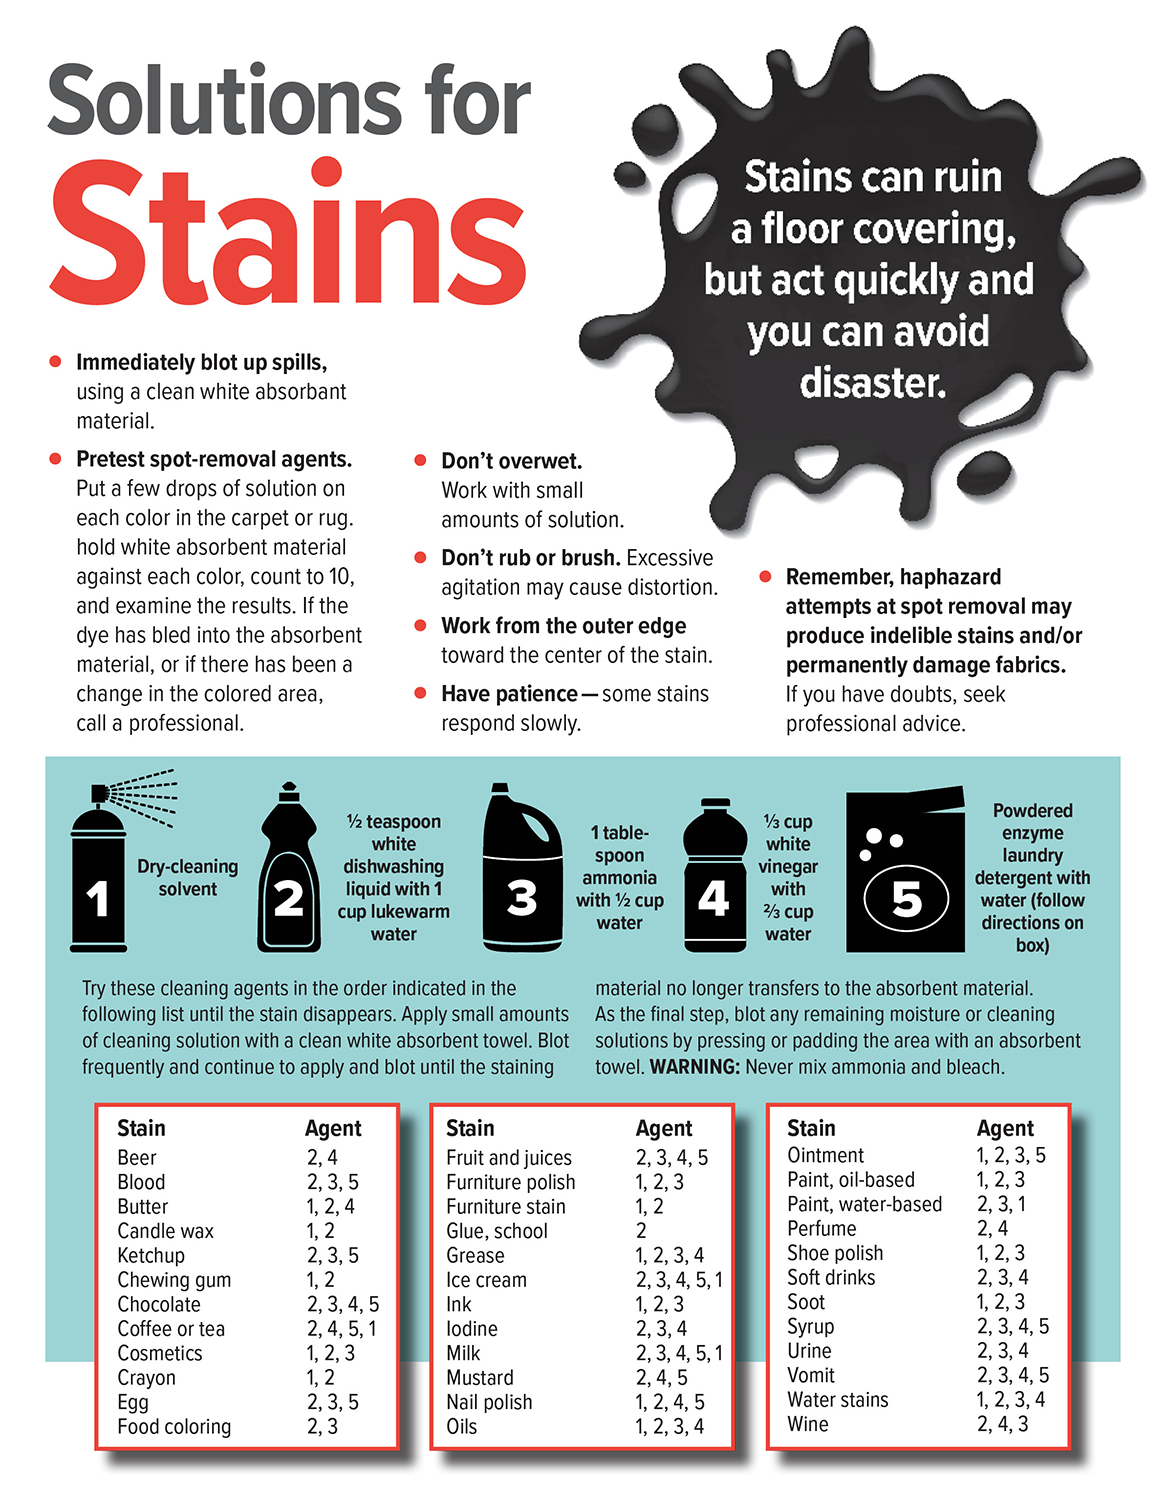 Solutions for Stains